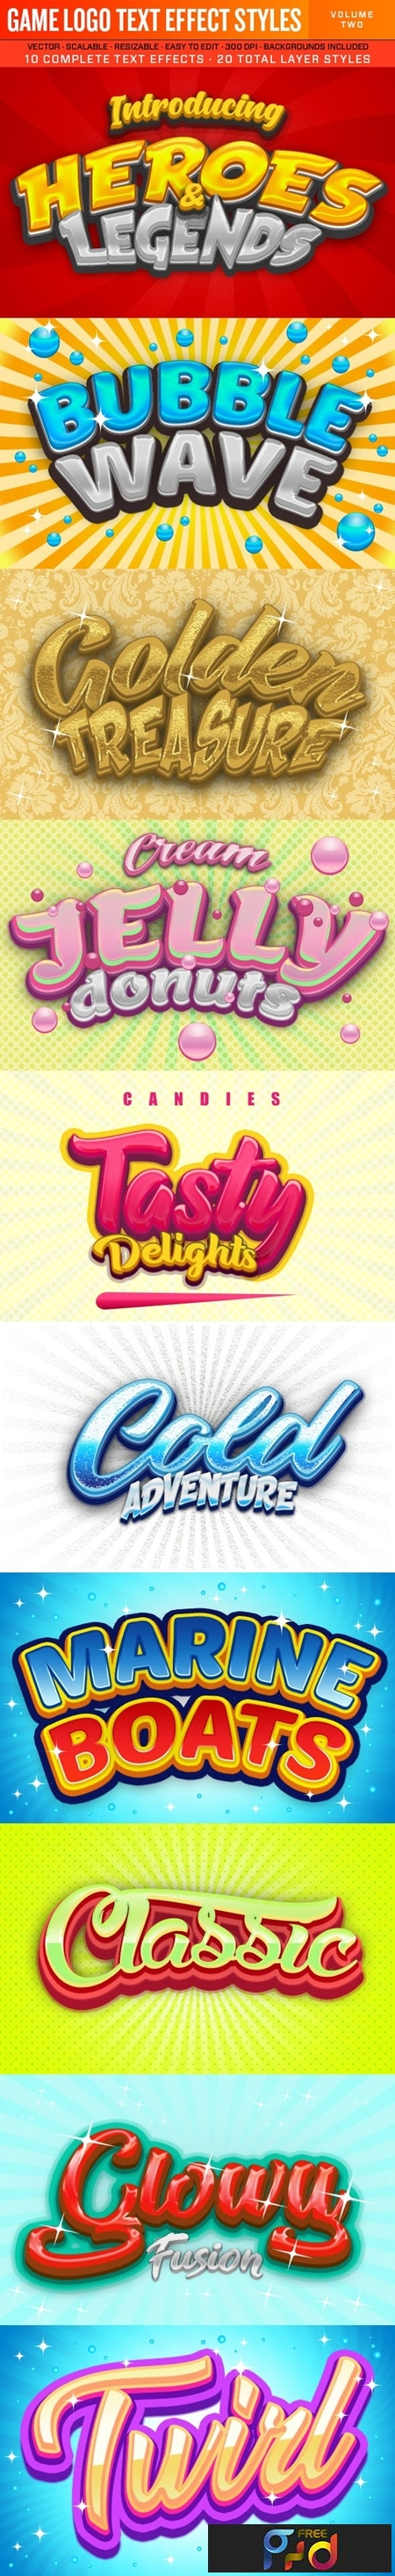 Game Logo Text Effect Styles 2 23685438 1